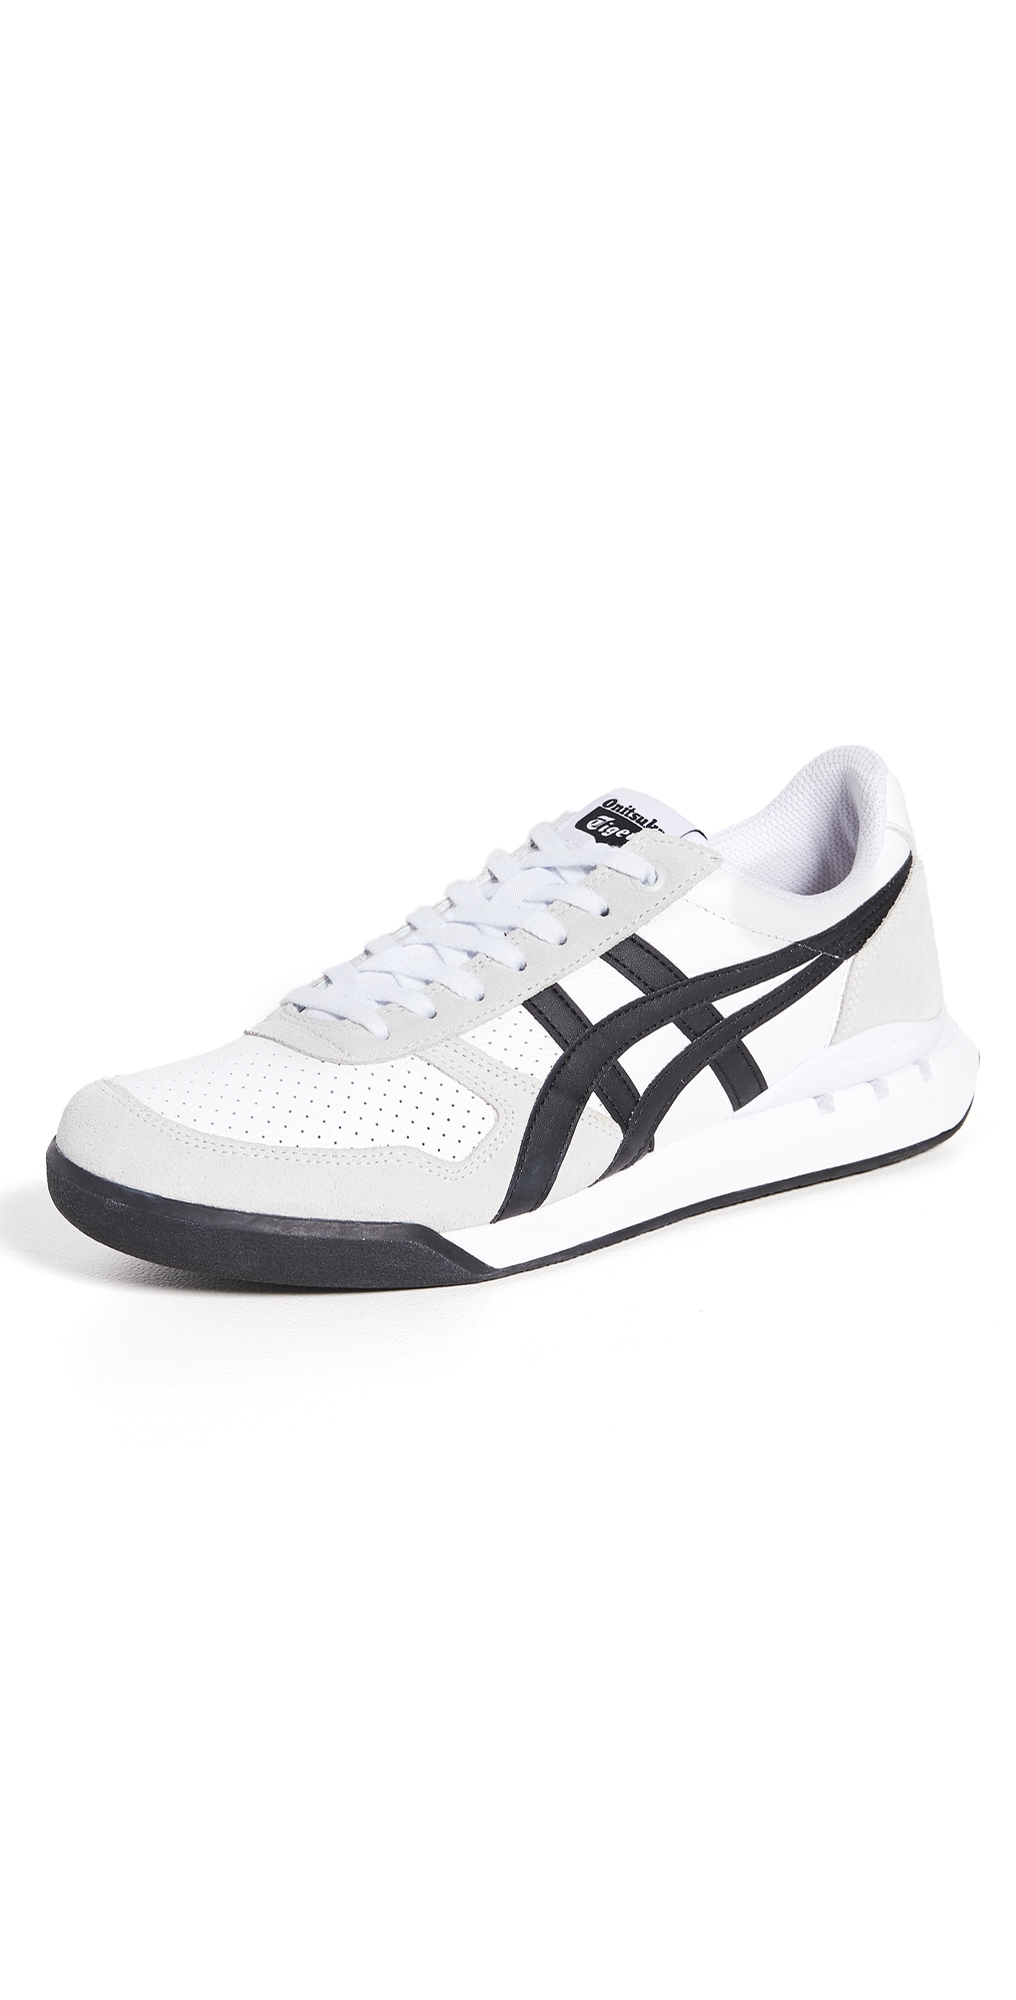 Onitsuka Tiger Leathers ULTIMATE 81 EX SNEAKERS